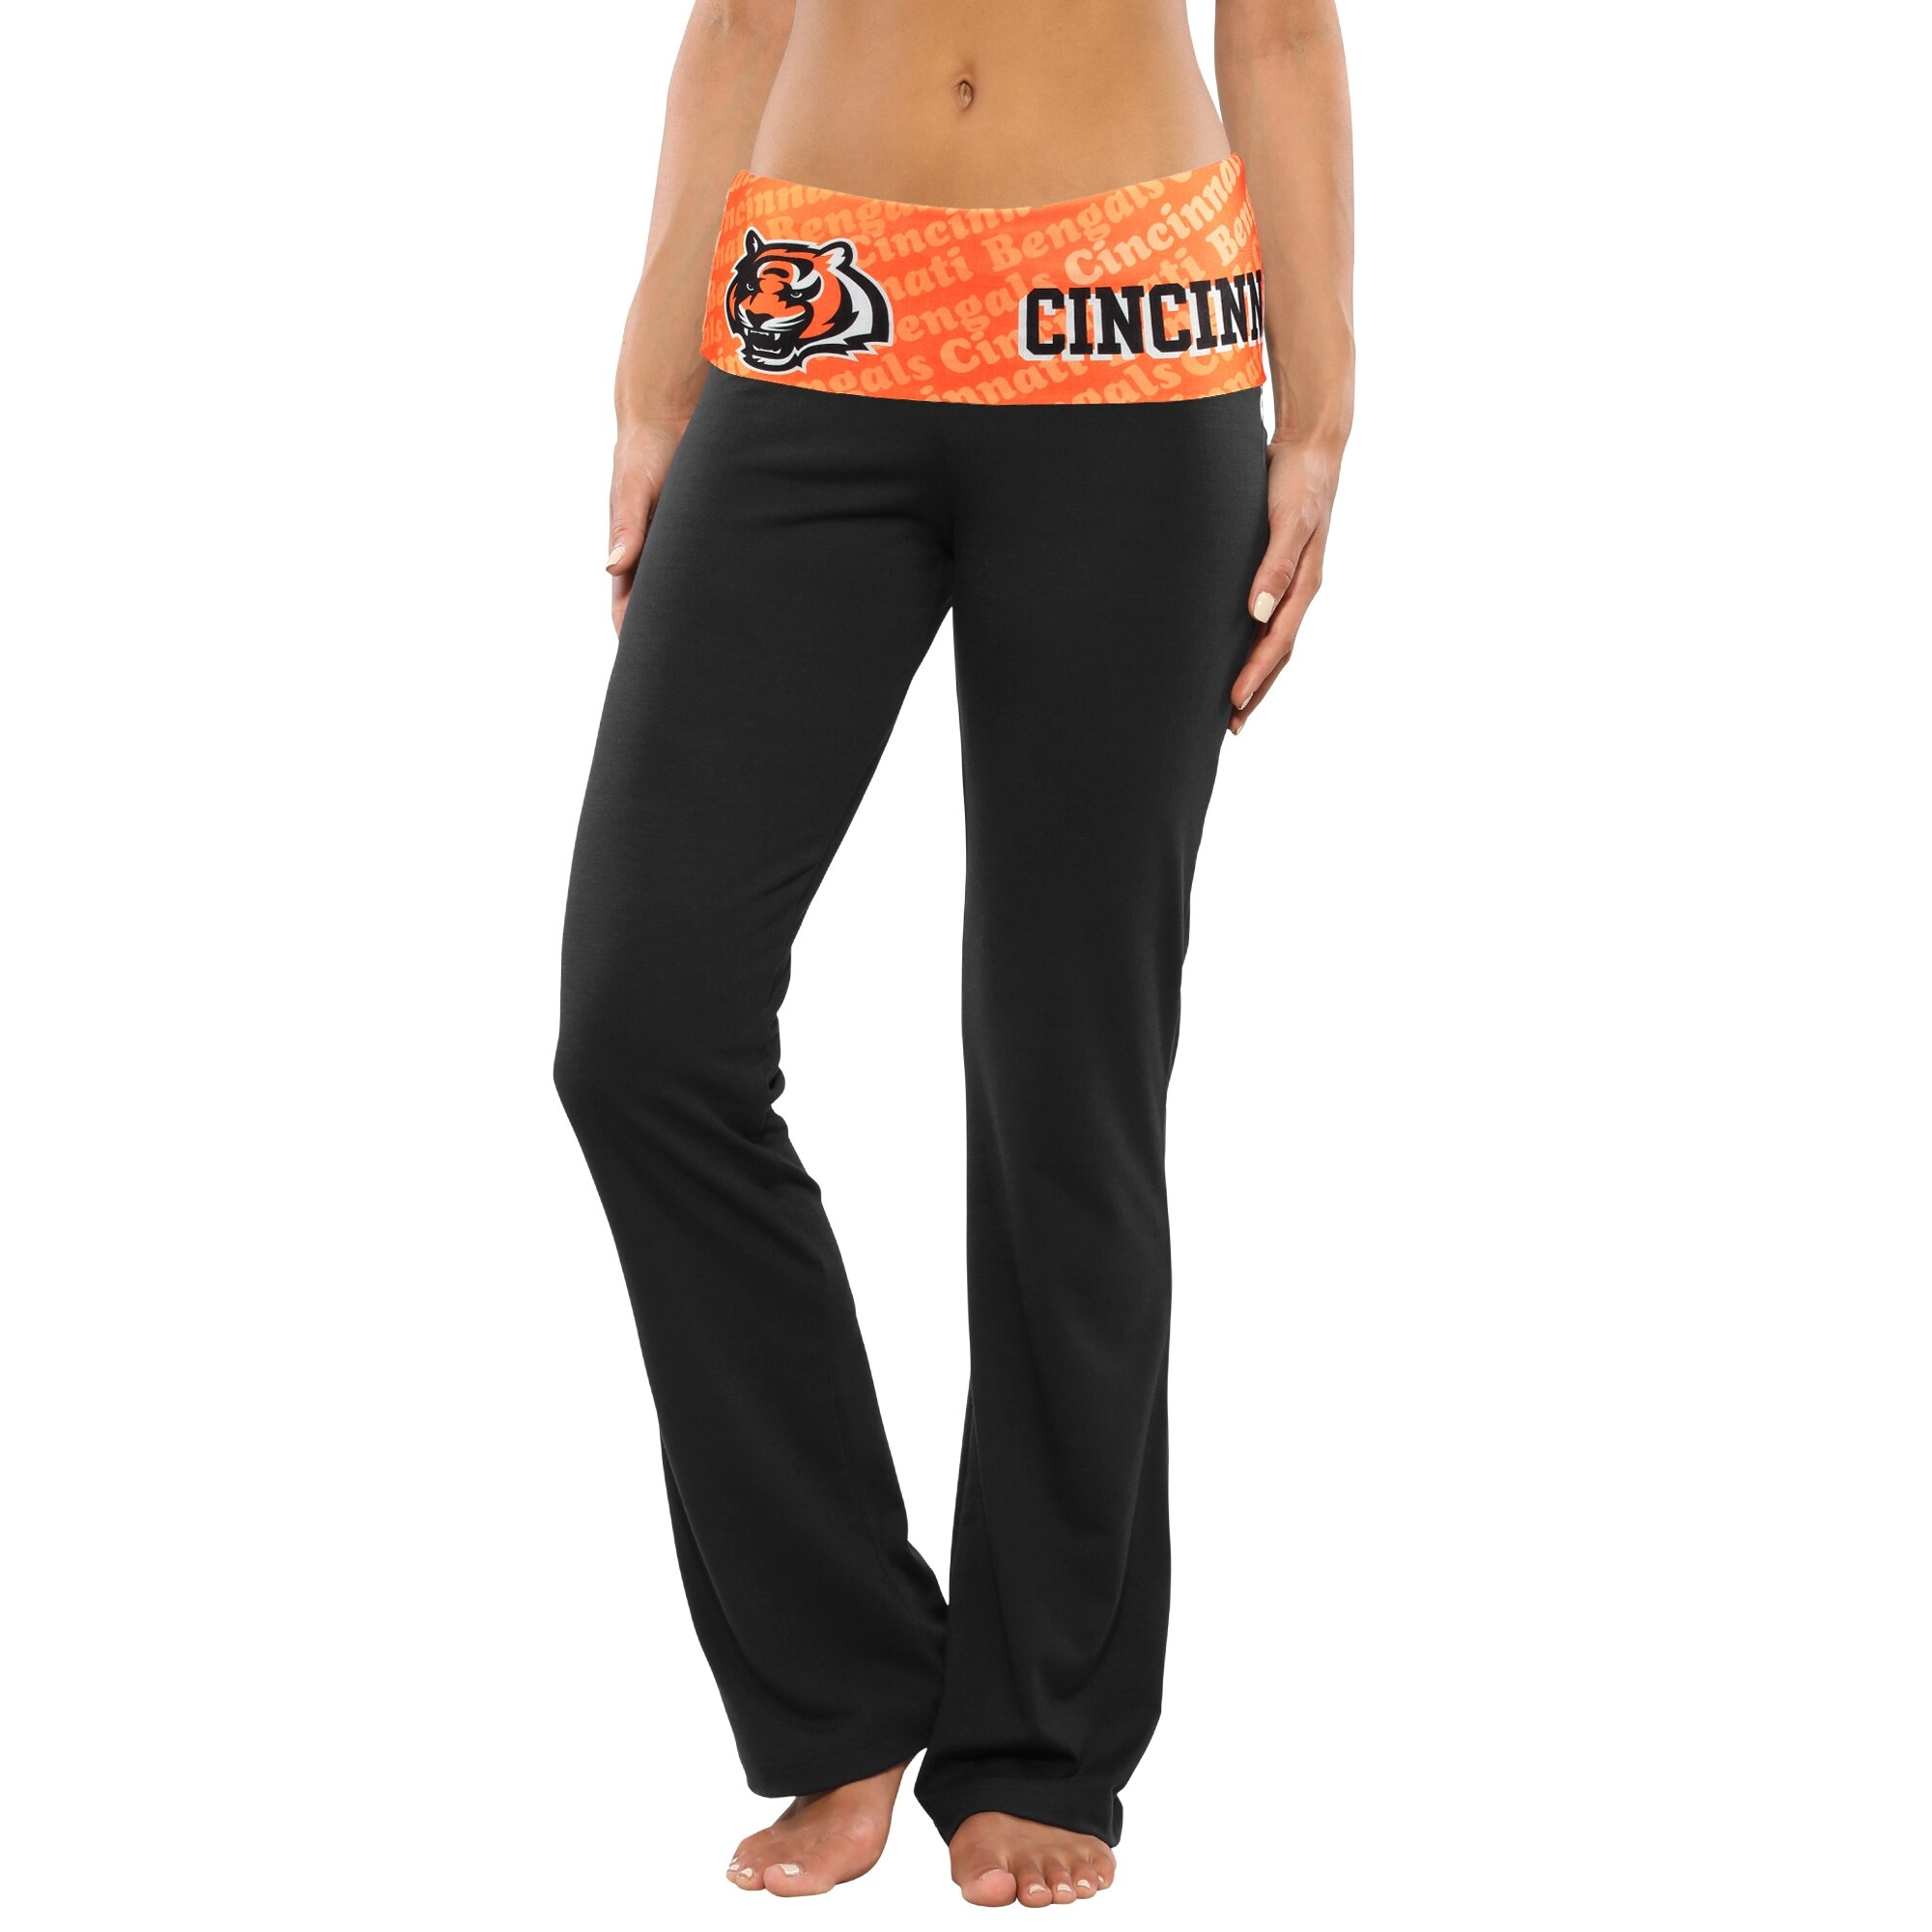 Cincinnati Bengals Women's Cameo Knit Pants - Black